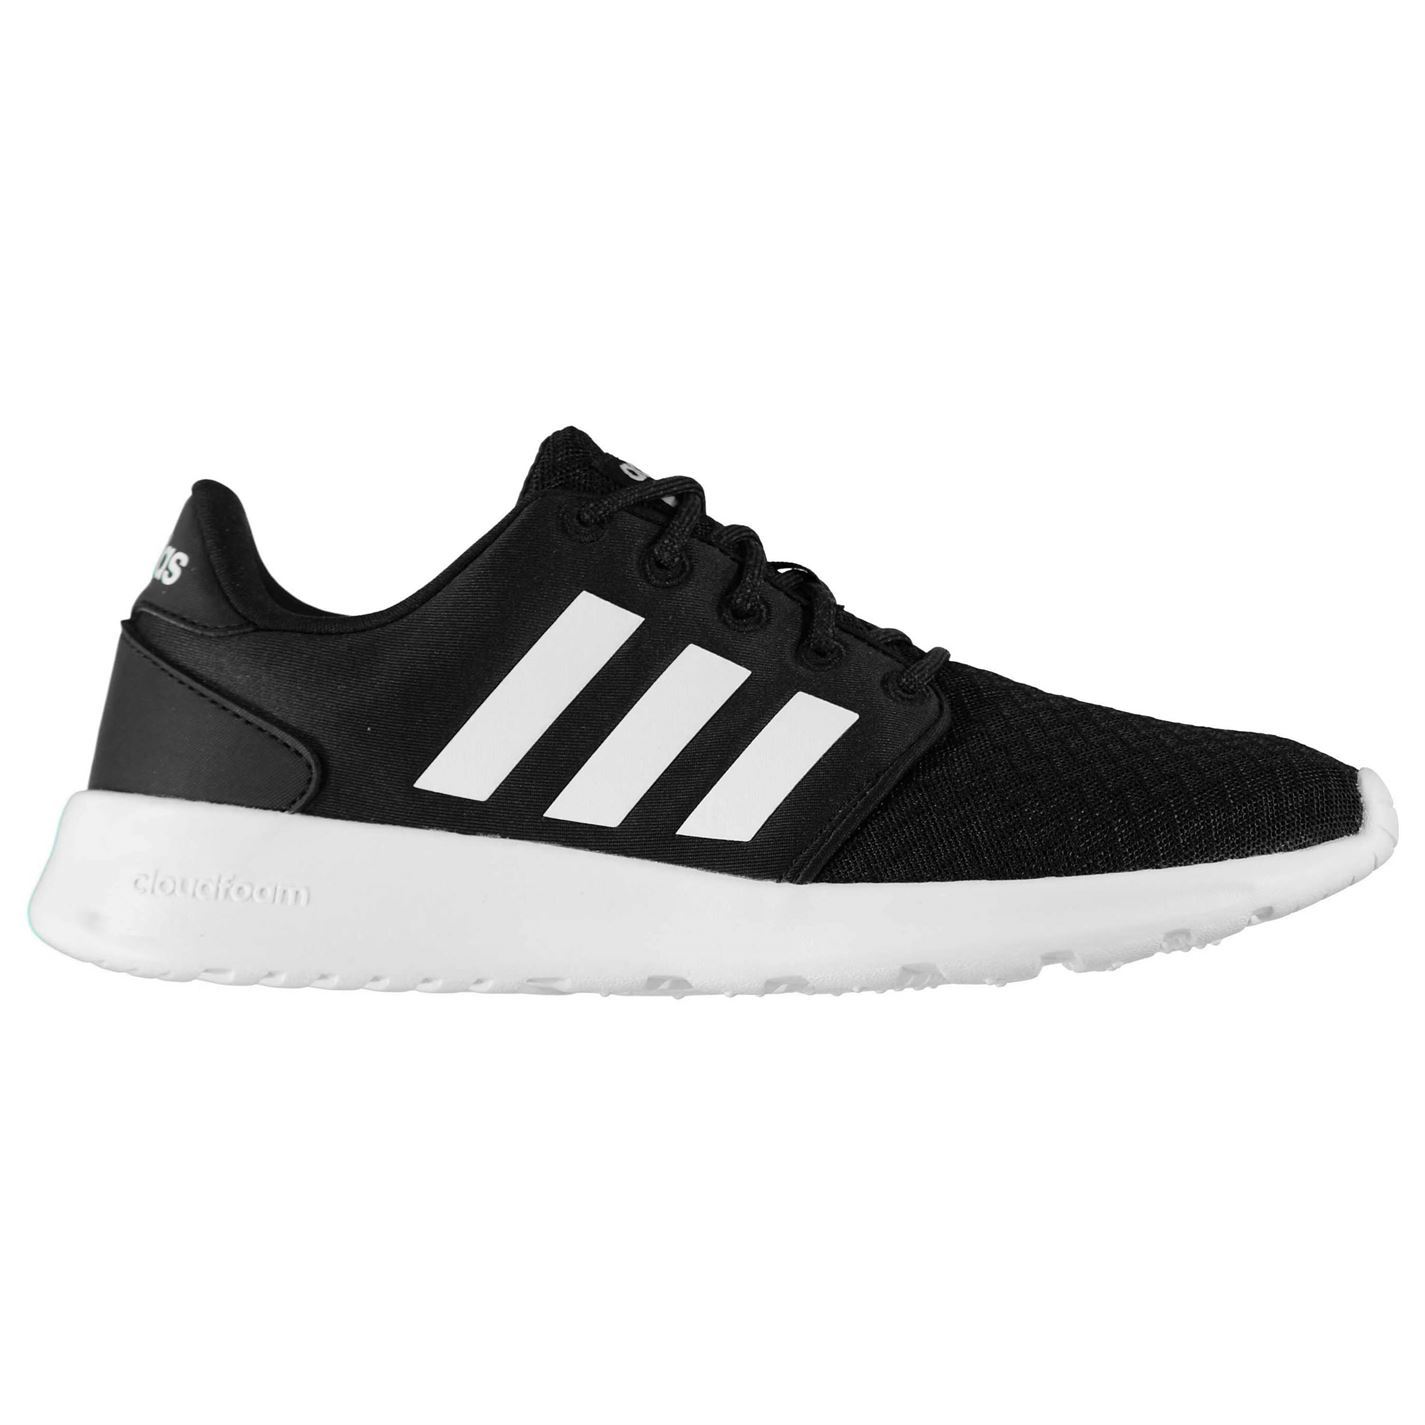 adidas Womens QT Racer Breathable Shoes Runners Lace Up Breathable Racer Padded Ankle Collar 6230e4